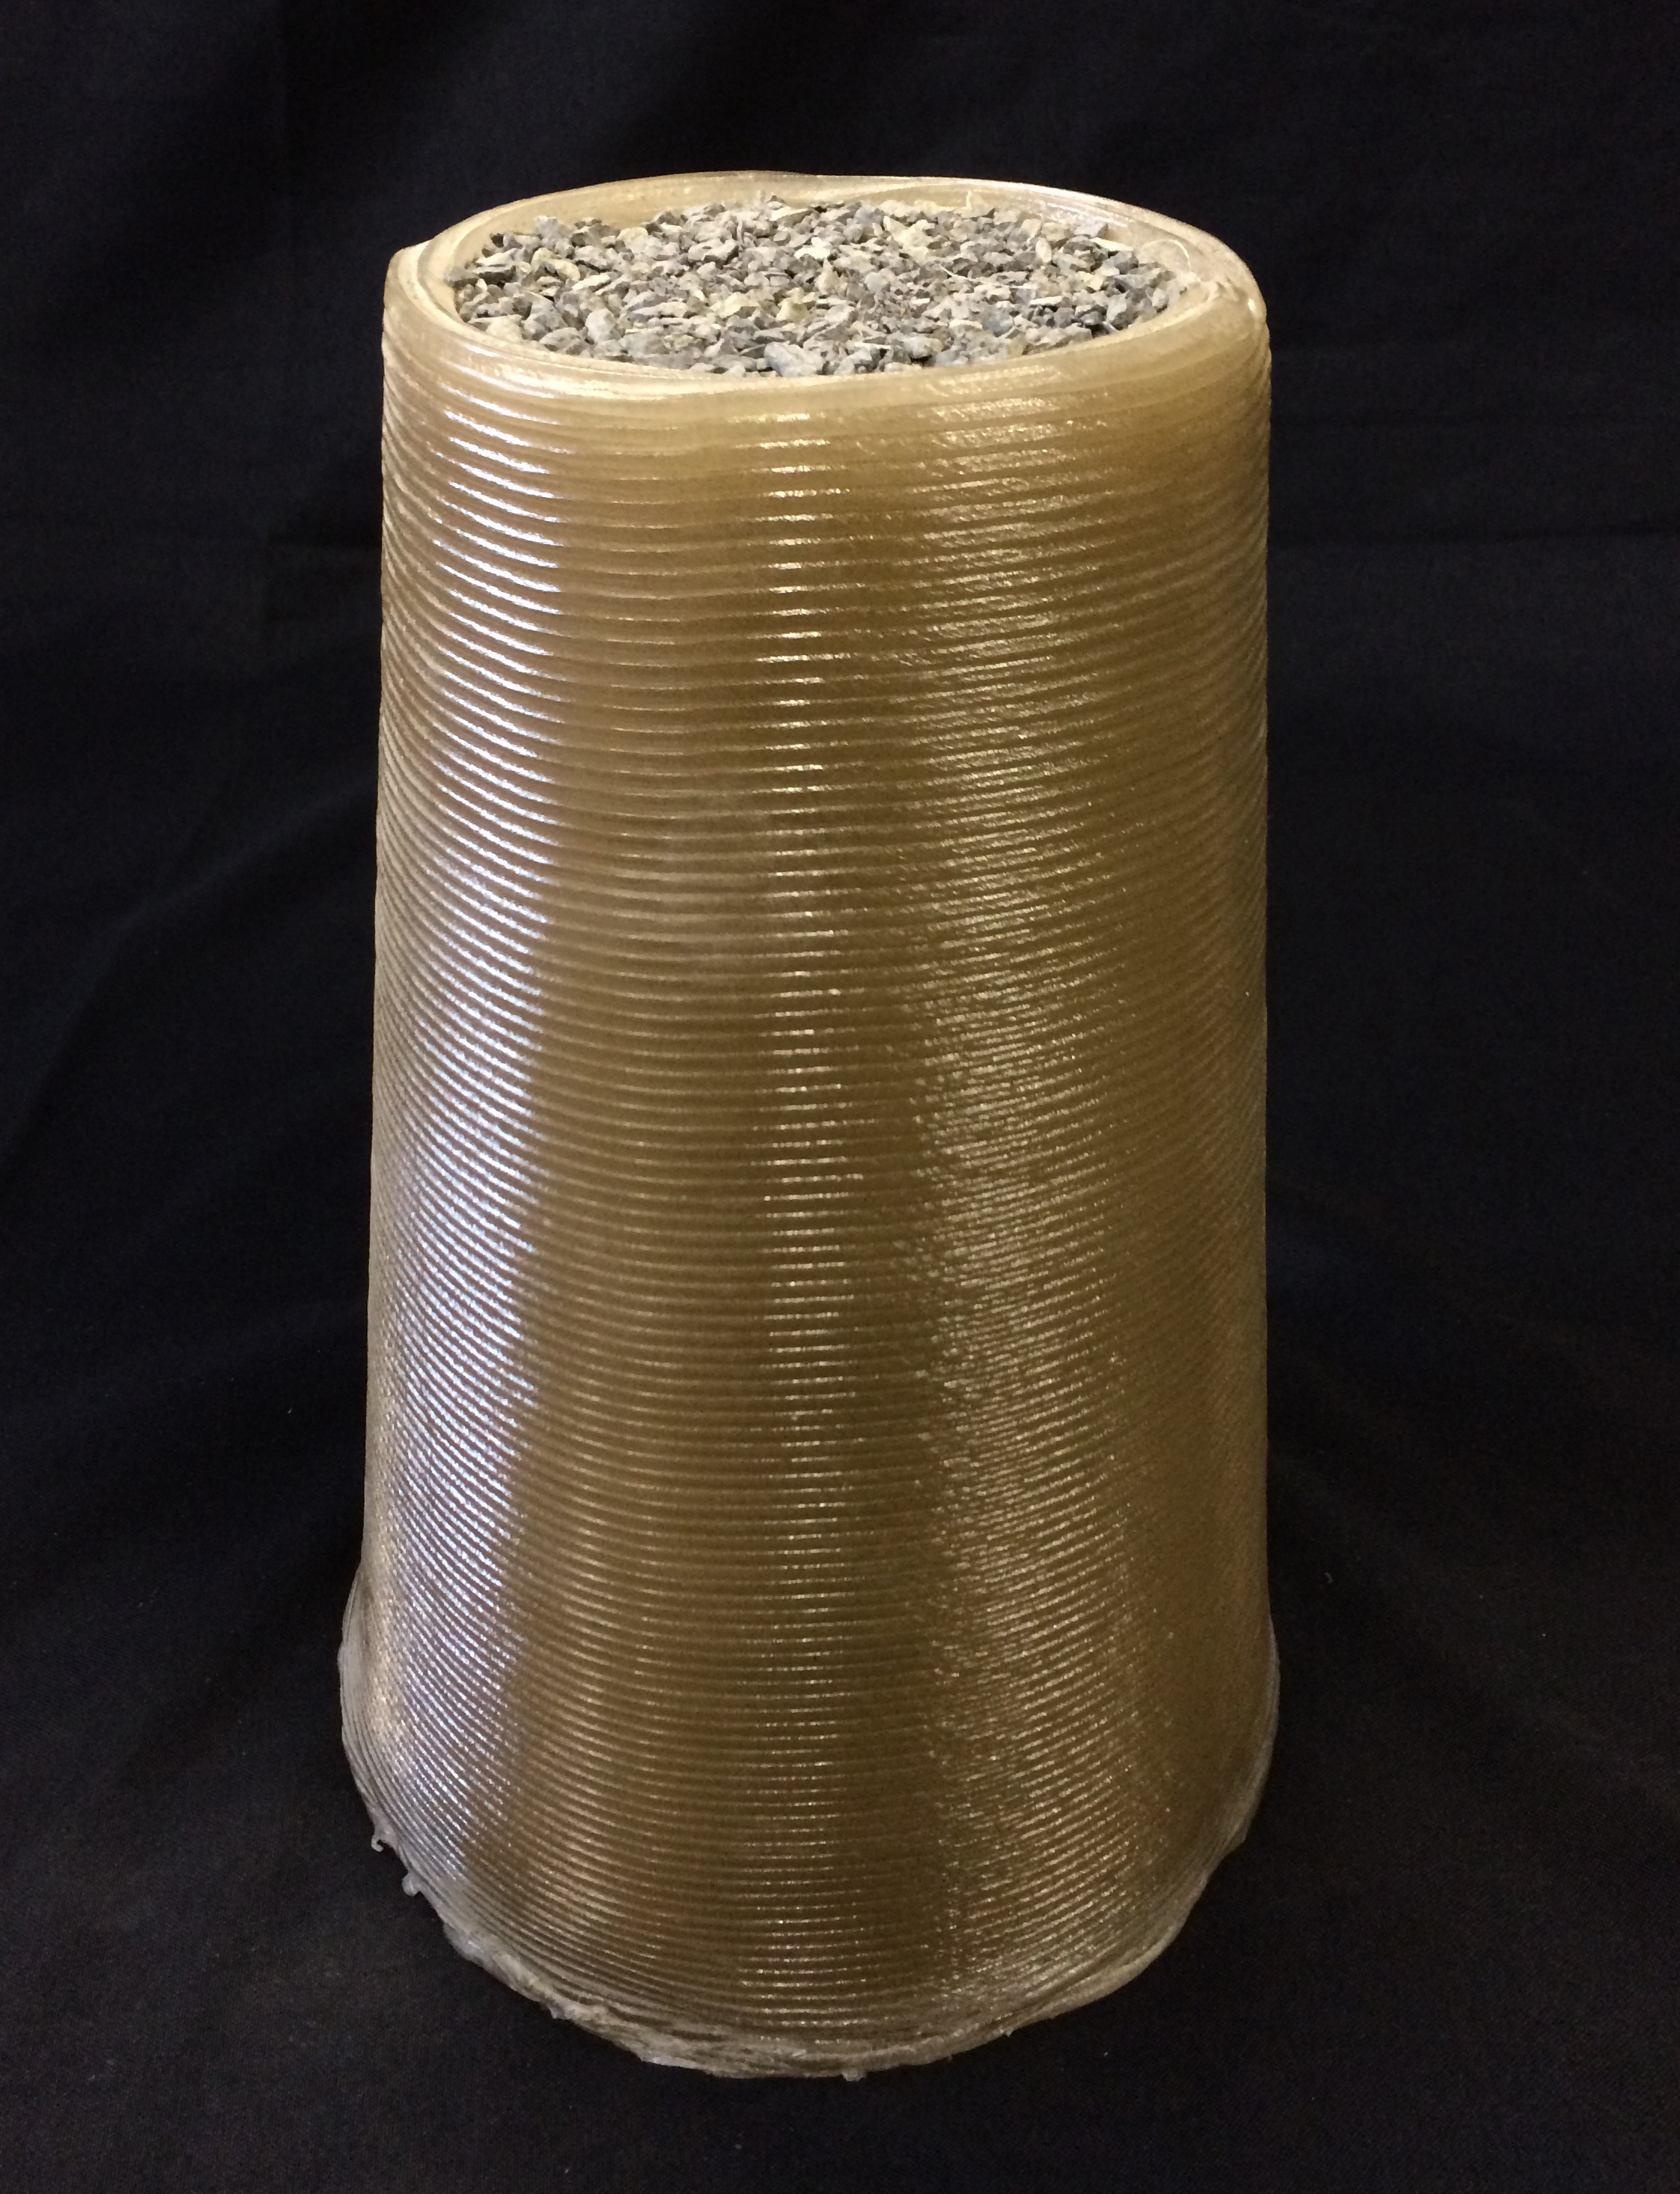 This cone was 3D-printed by the Foster + Partners   Branch Technology team for the Level 2, Phase 1 Compression Test Competition of NASA's 3D-Printed Habitat Competition. Foster + Partners scored the most points for this stage, and was awarded $85,930. - Image Credits: Courtesy of Foster + Stearns   Branch Technology (click to enlarge)